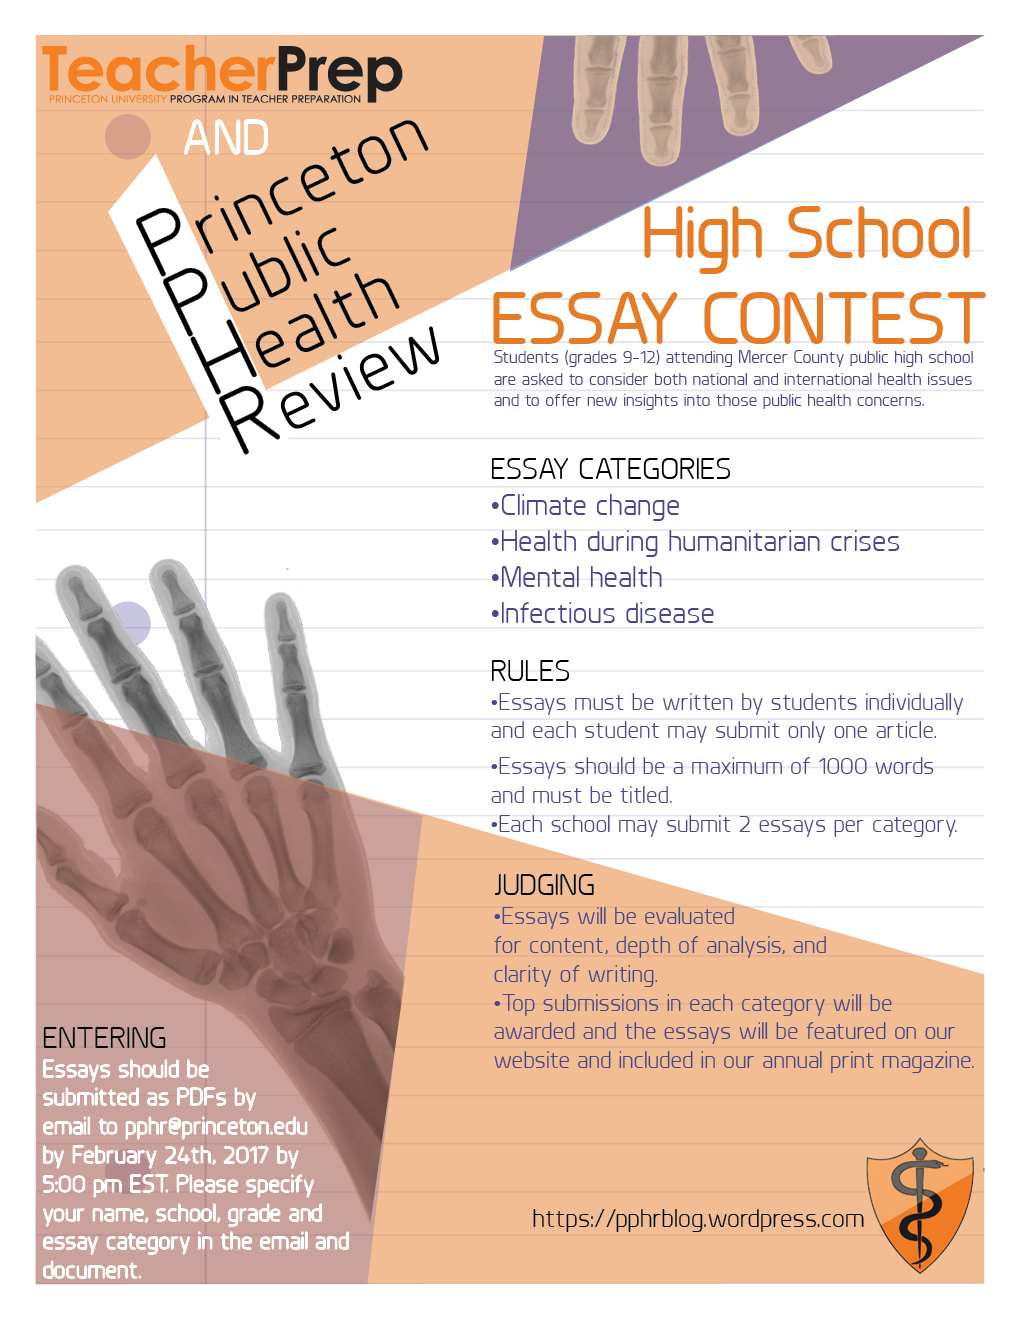 008 High School Essay Contests Pphressaycontestfeb24 Fascinating Contest Winners 2019 For Scholarships Full